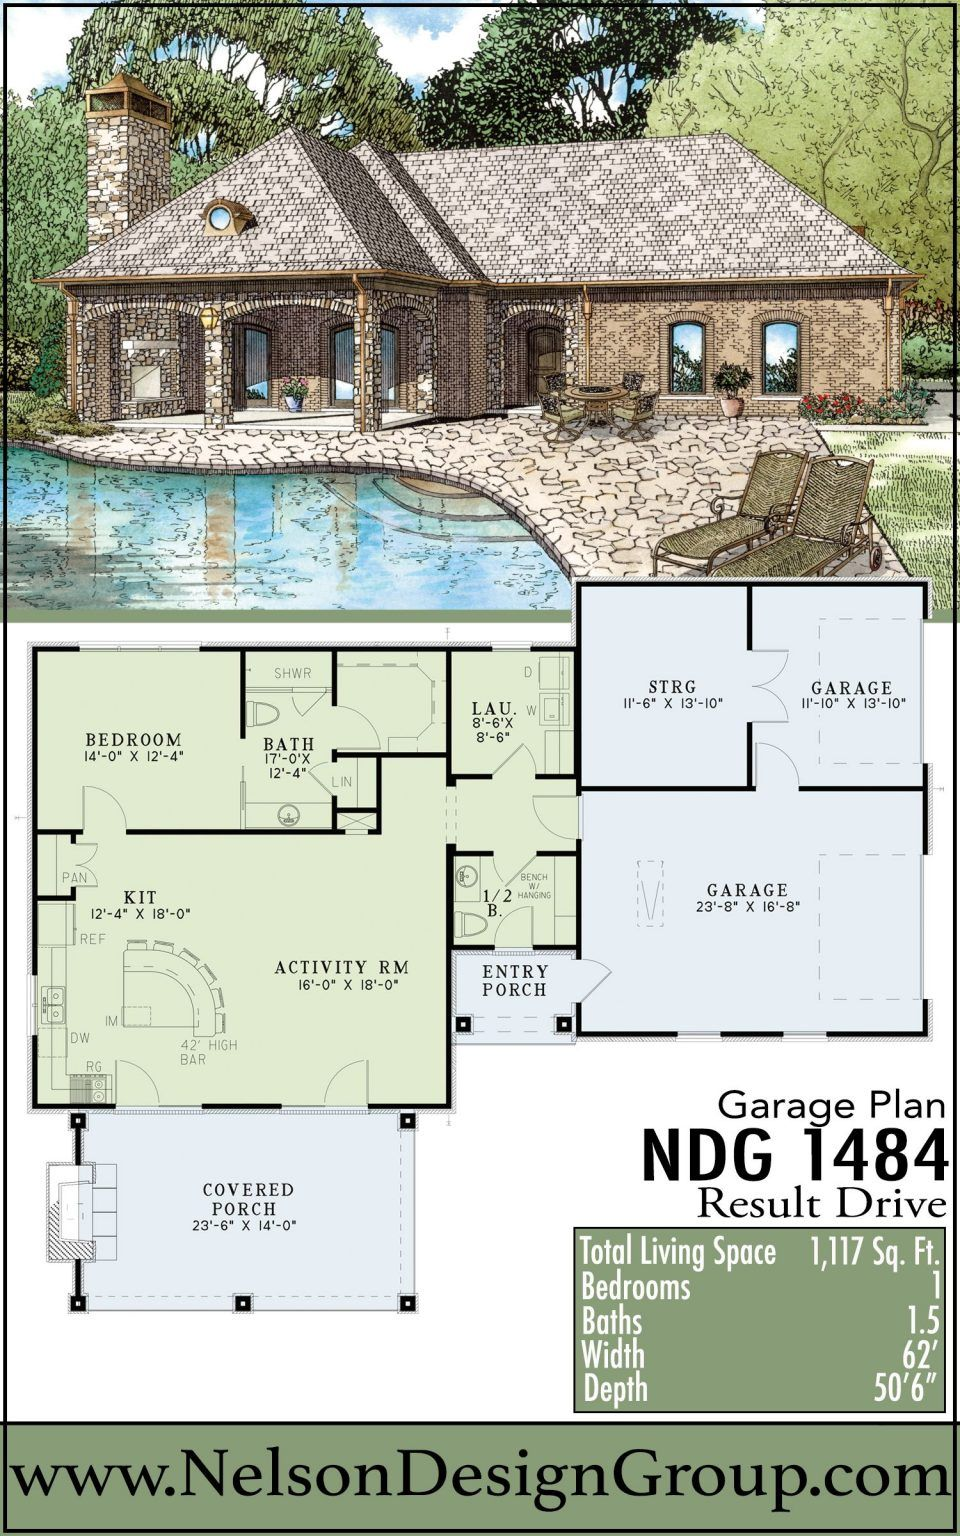 75 Pool House Plans With Living Quarters By Armandina Fusco Pool House Plans Pool Houses Unique House Plans